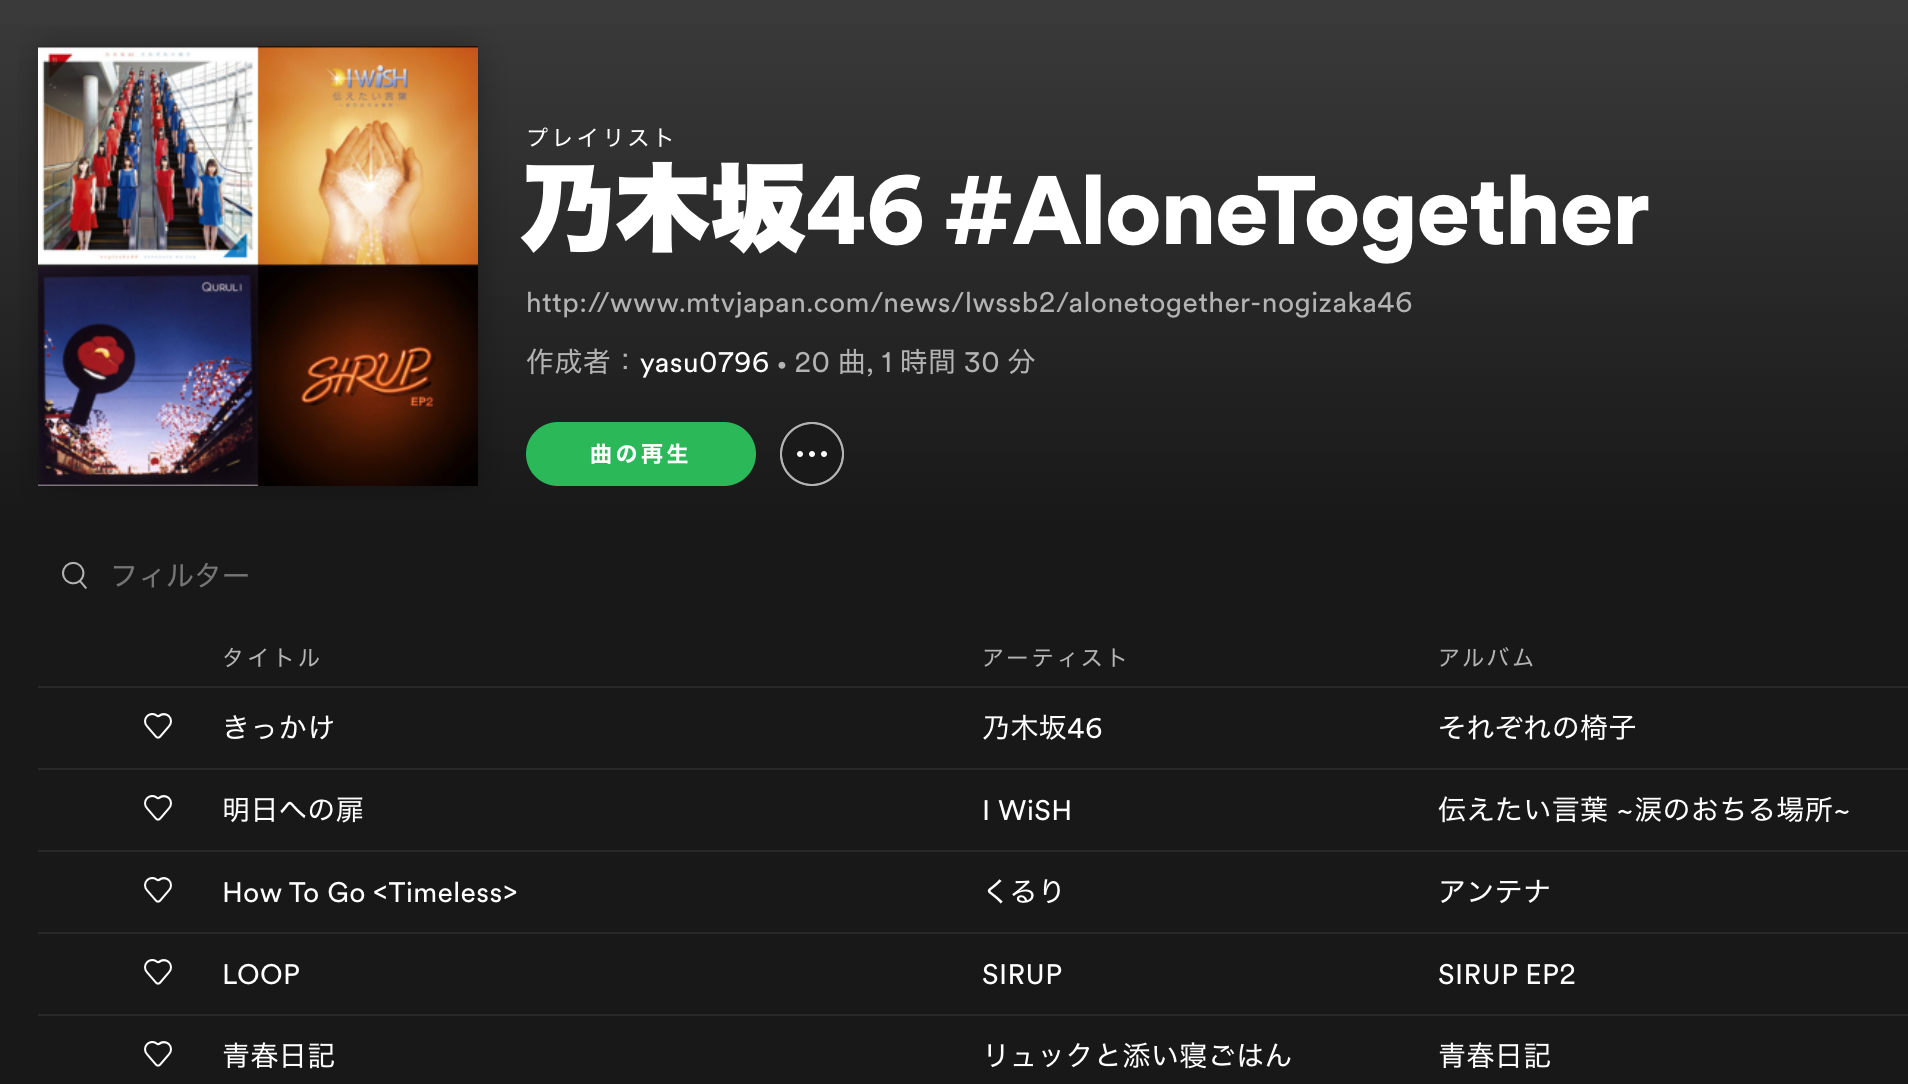 乃木坂46 #AloneTogether